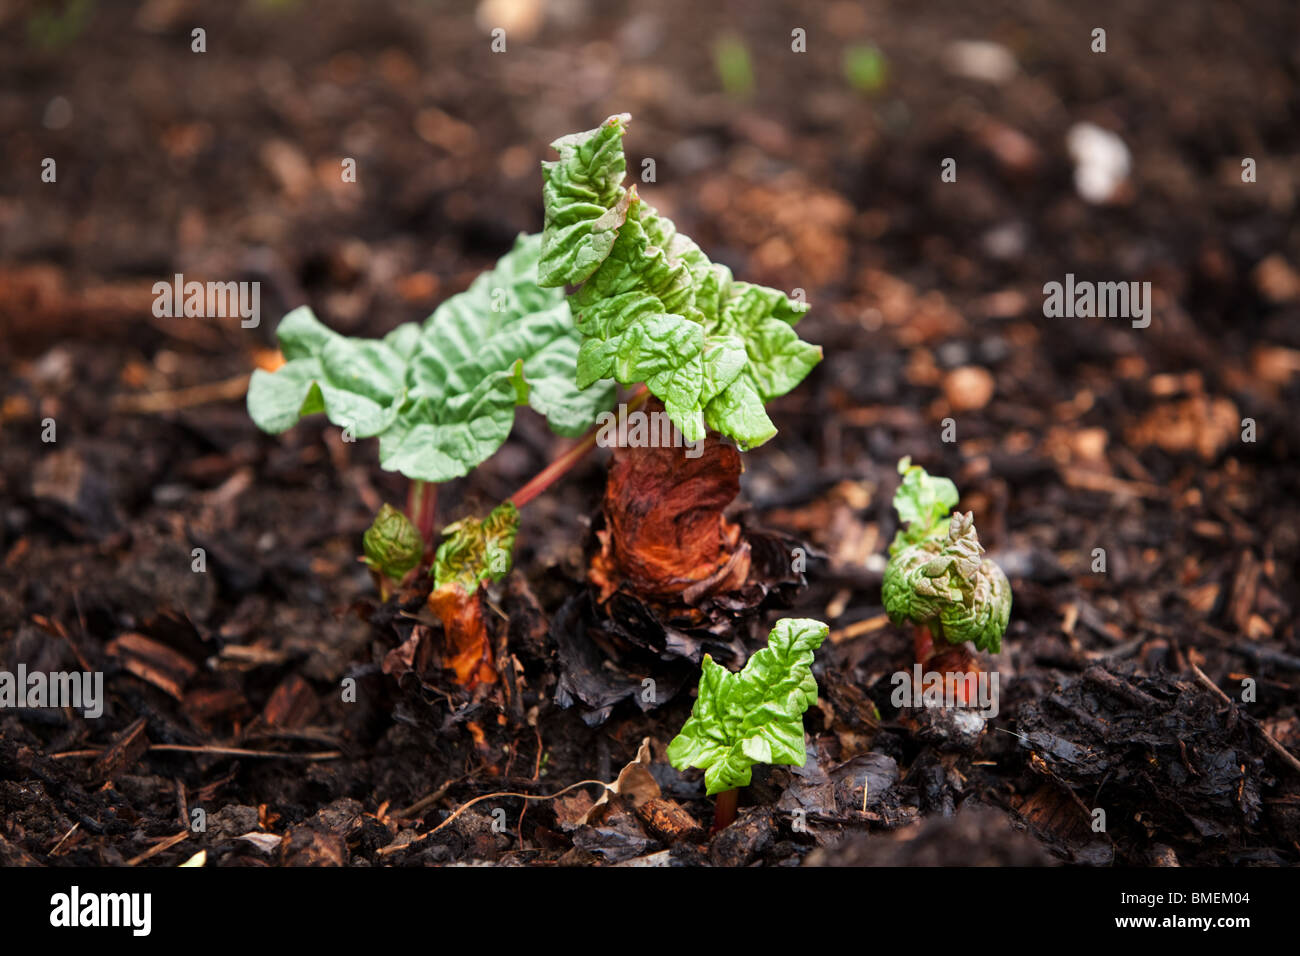 Rhubarb Leaf emerging and beginning to  open - Stock Image